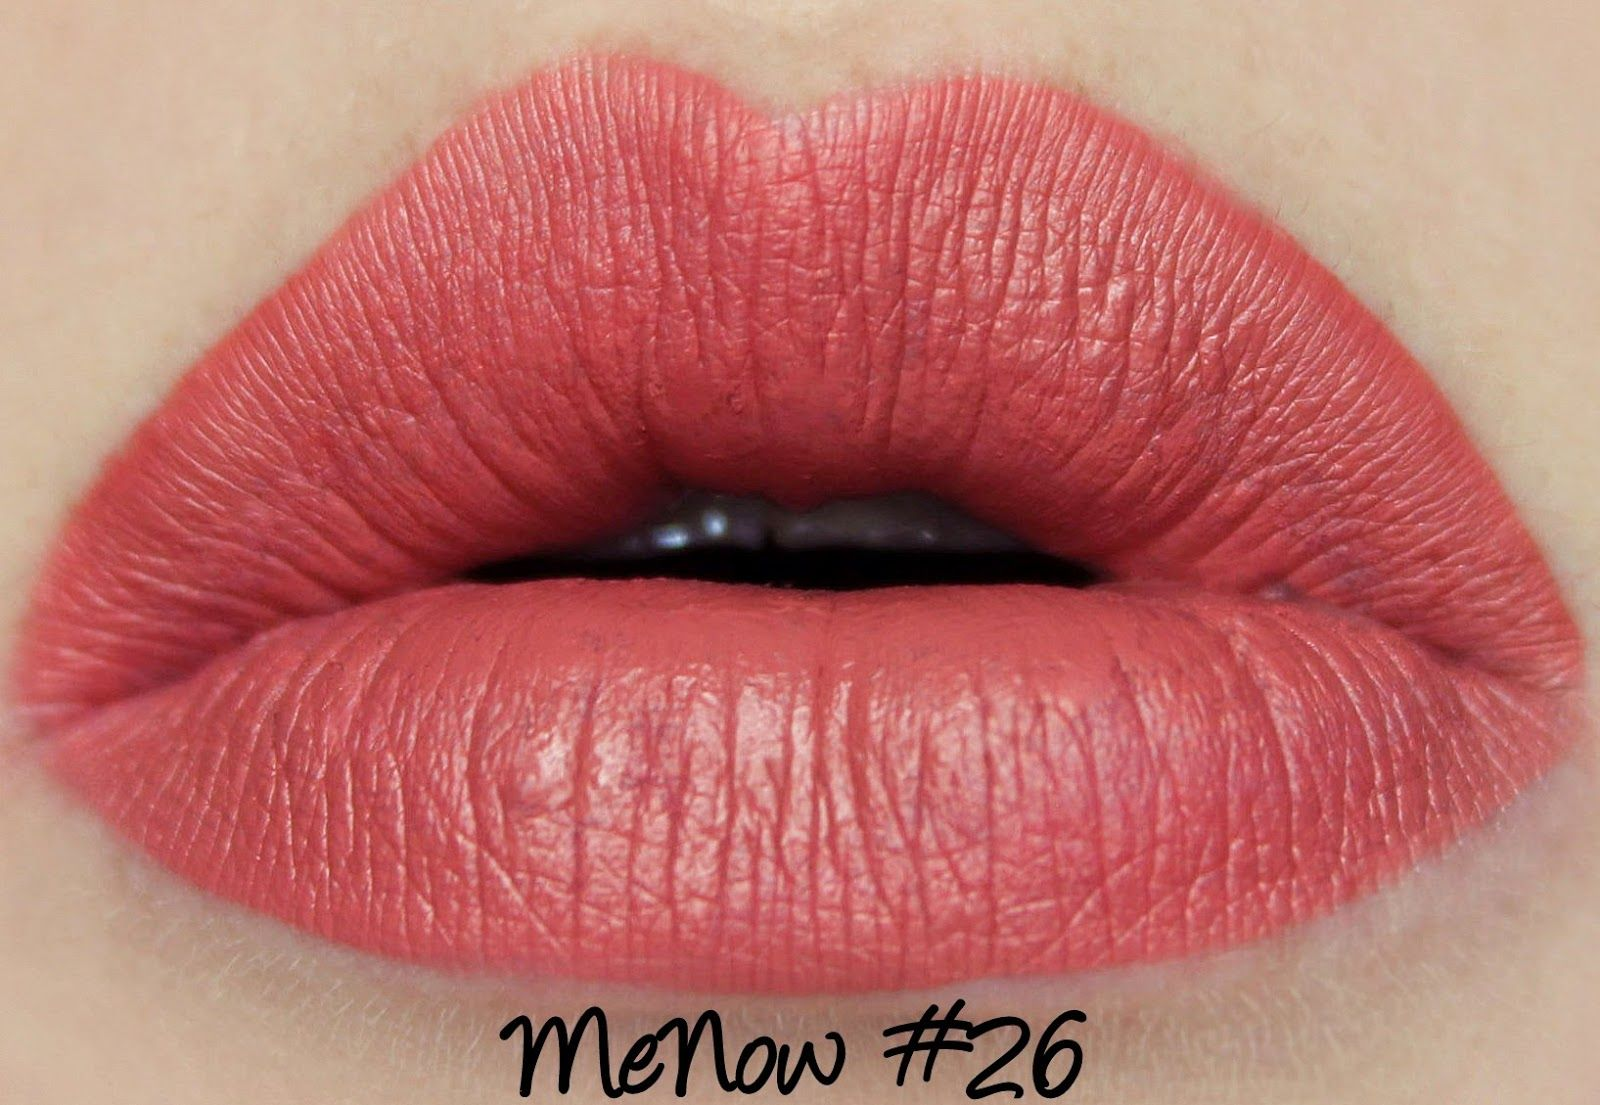 MeNow Generation II Long Lasting Lipgloss #26 Swatches & Review